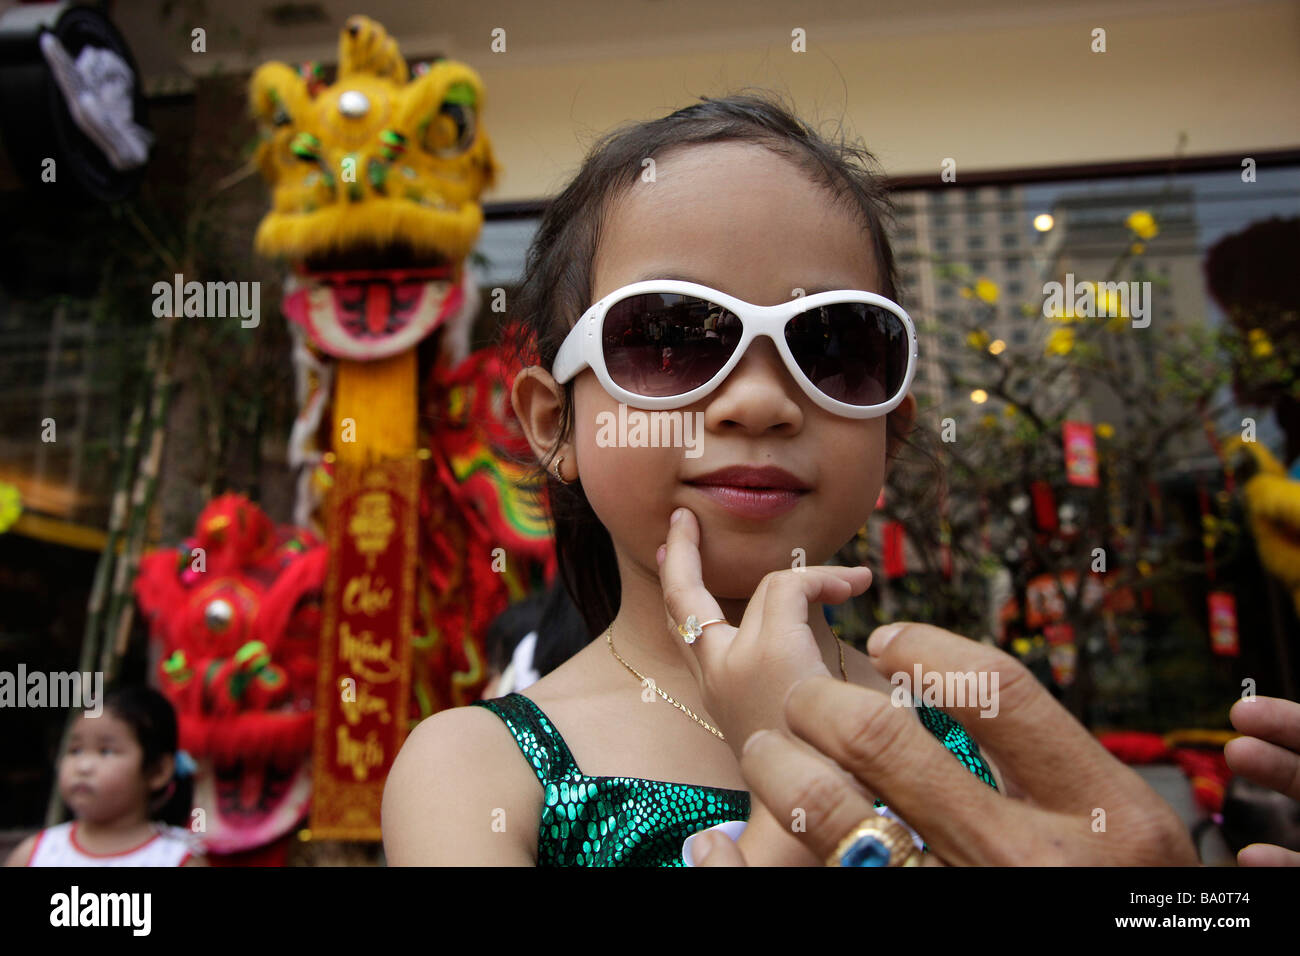 Stock Photo - young girl with sunglasses posing in Saigon Ho Chi <b>Minh City</b> ... - young-girl-with-sunglasses-posing-in-saigon-ho-chi-minh-city-vietnam-BA0T74